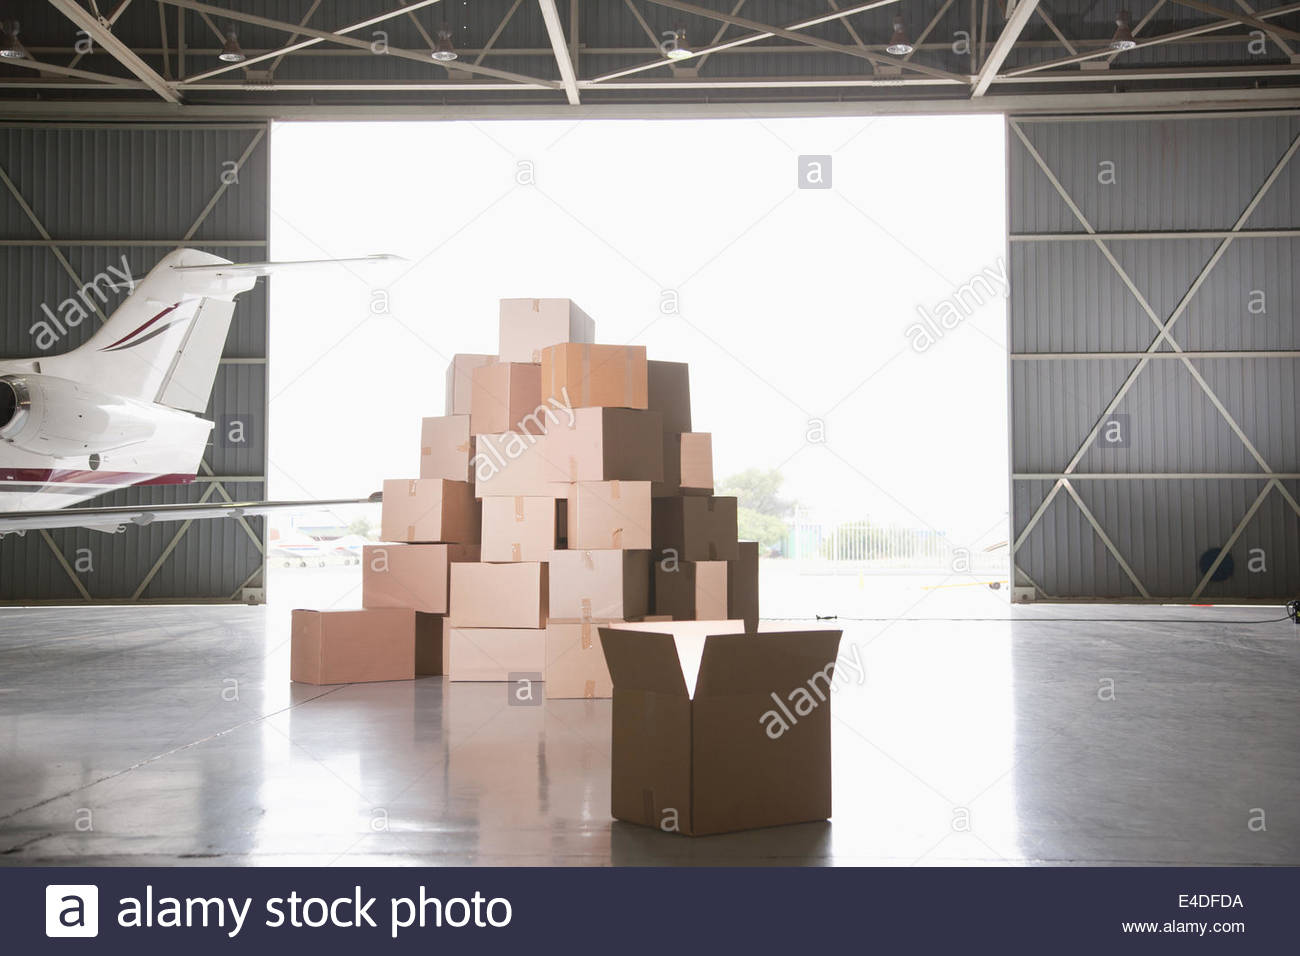 Stack of boxes in hangar Stock Photo